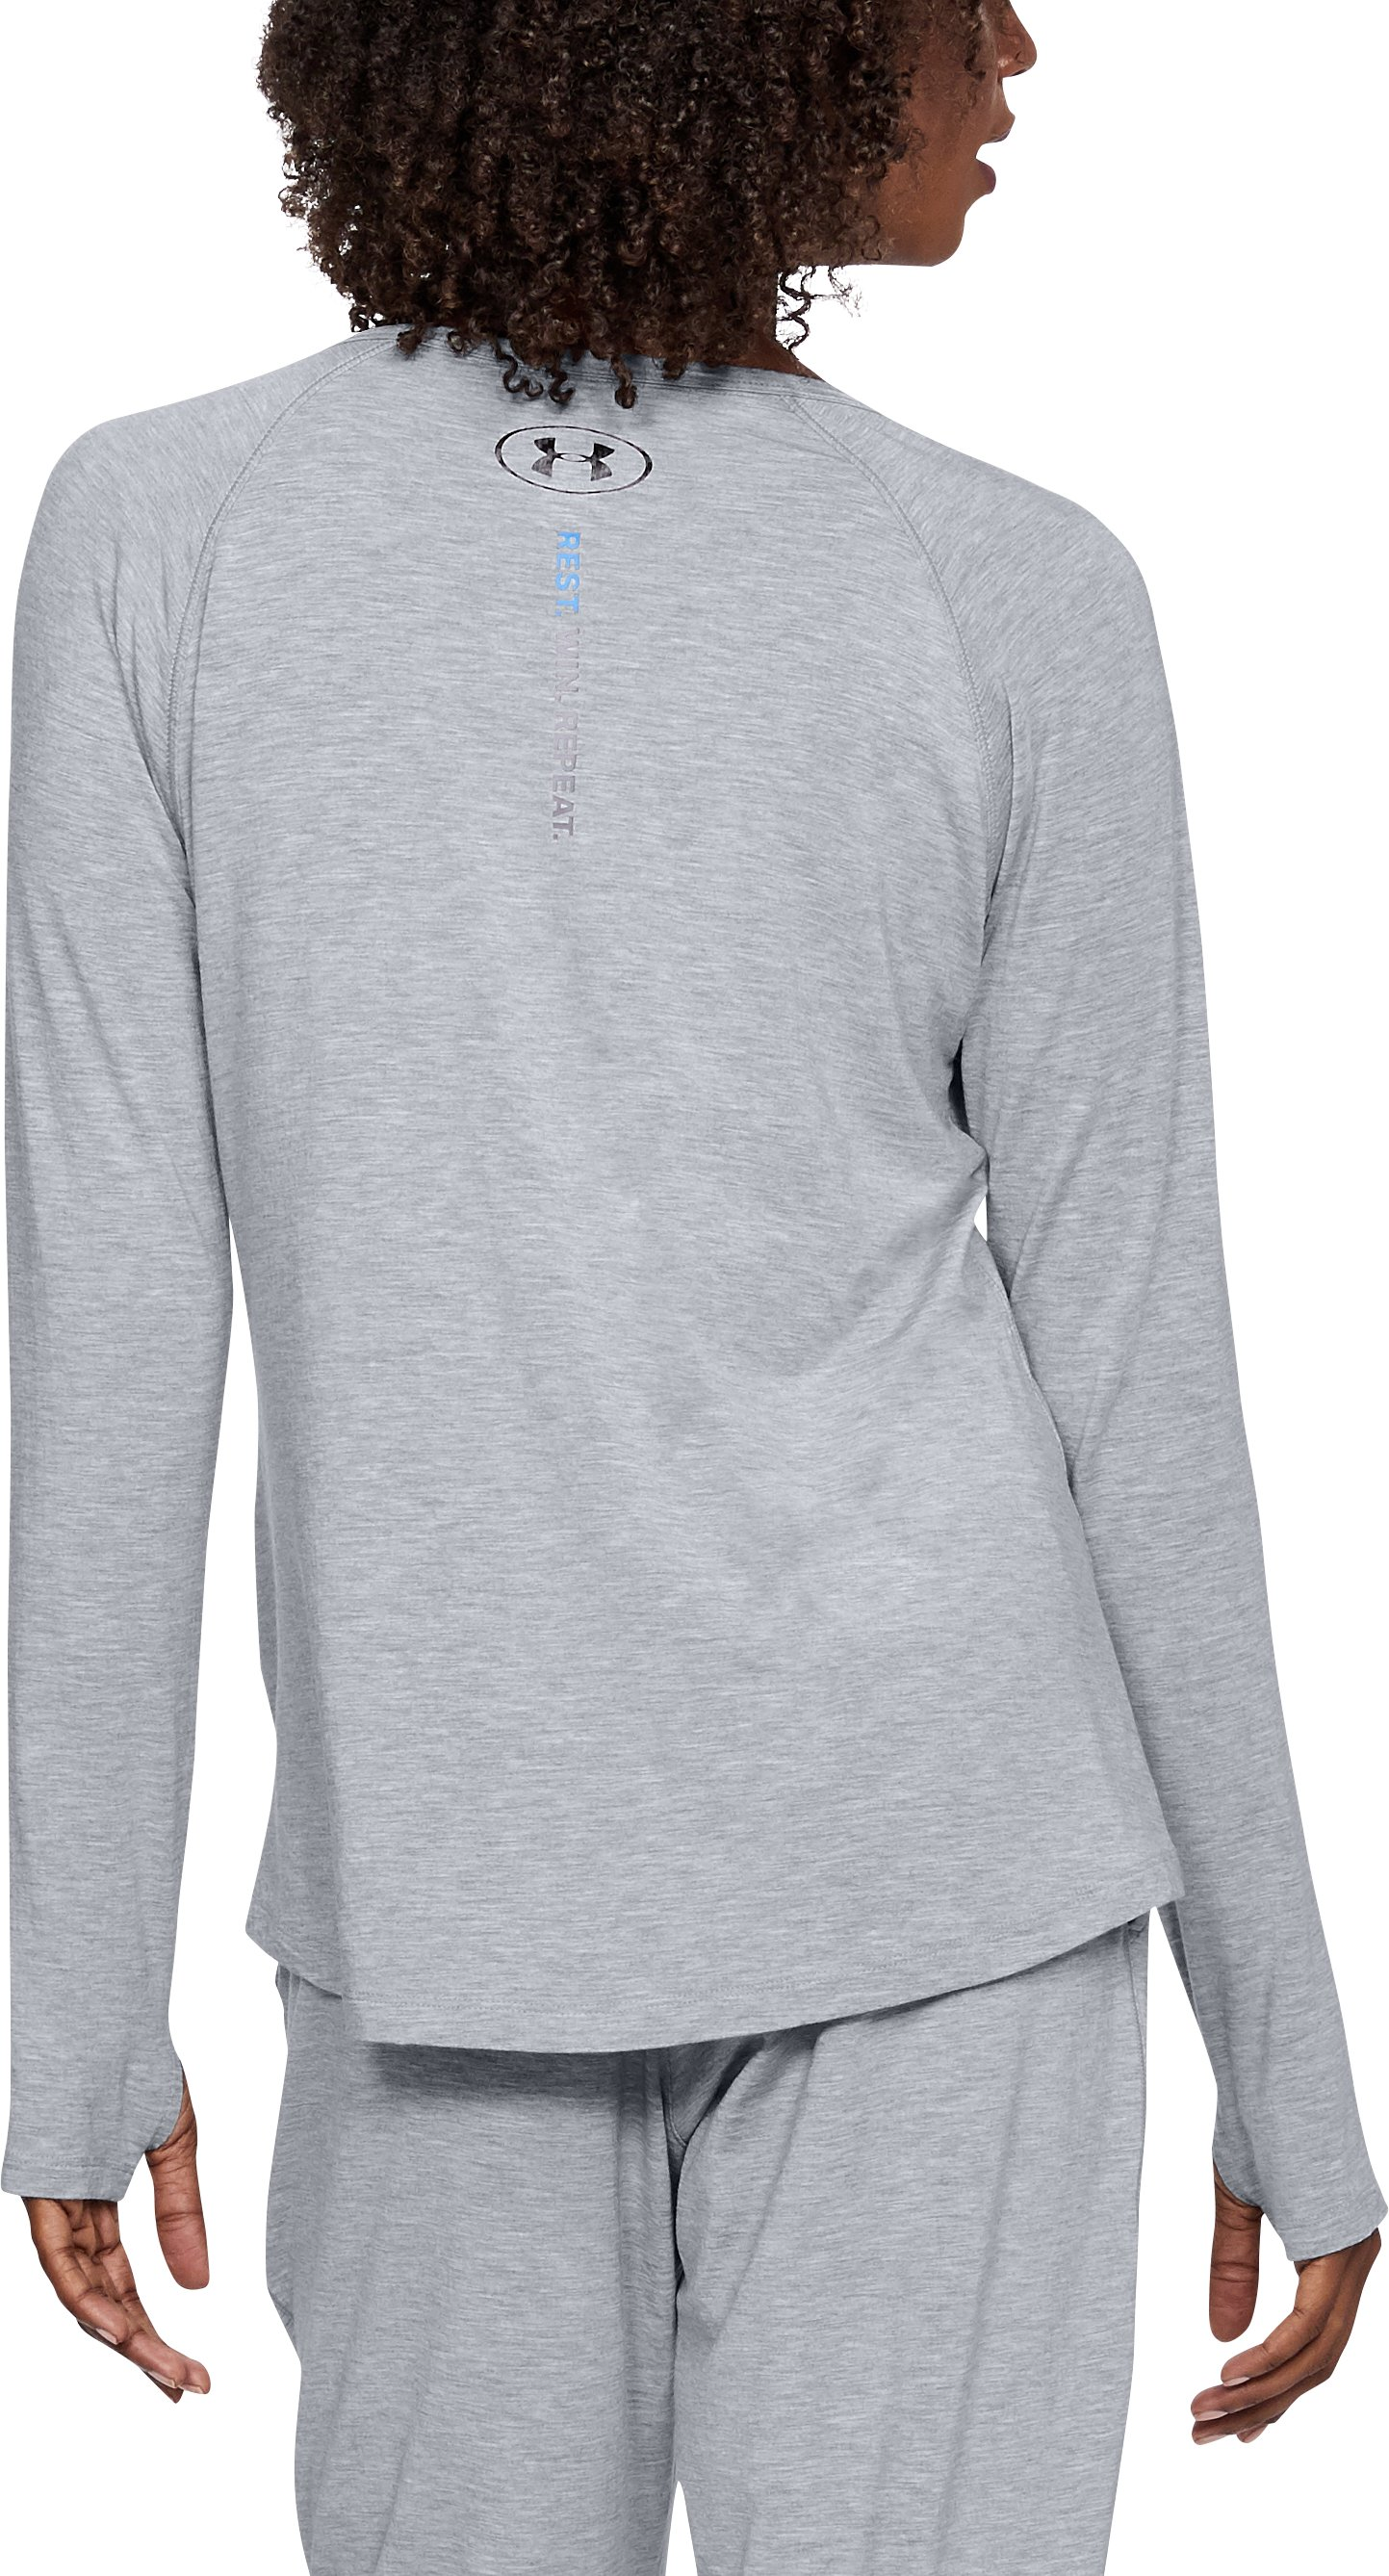 Women's Athlete Recovery Ultra Comfort Sleepwear Henley, True Gray Heather,